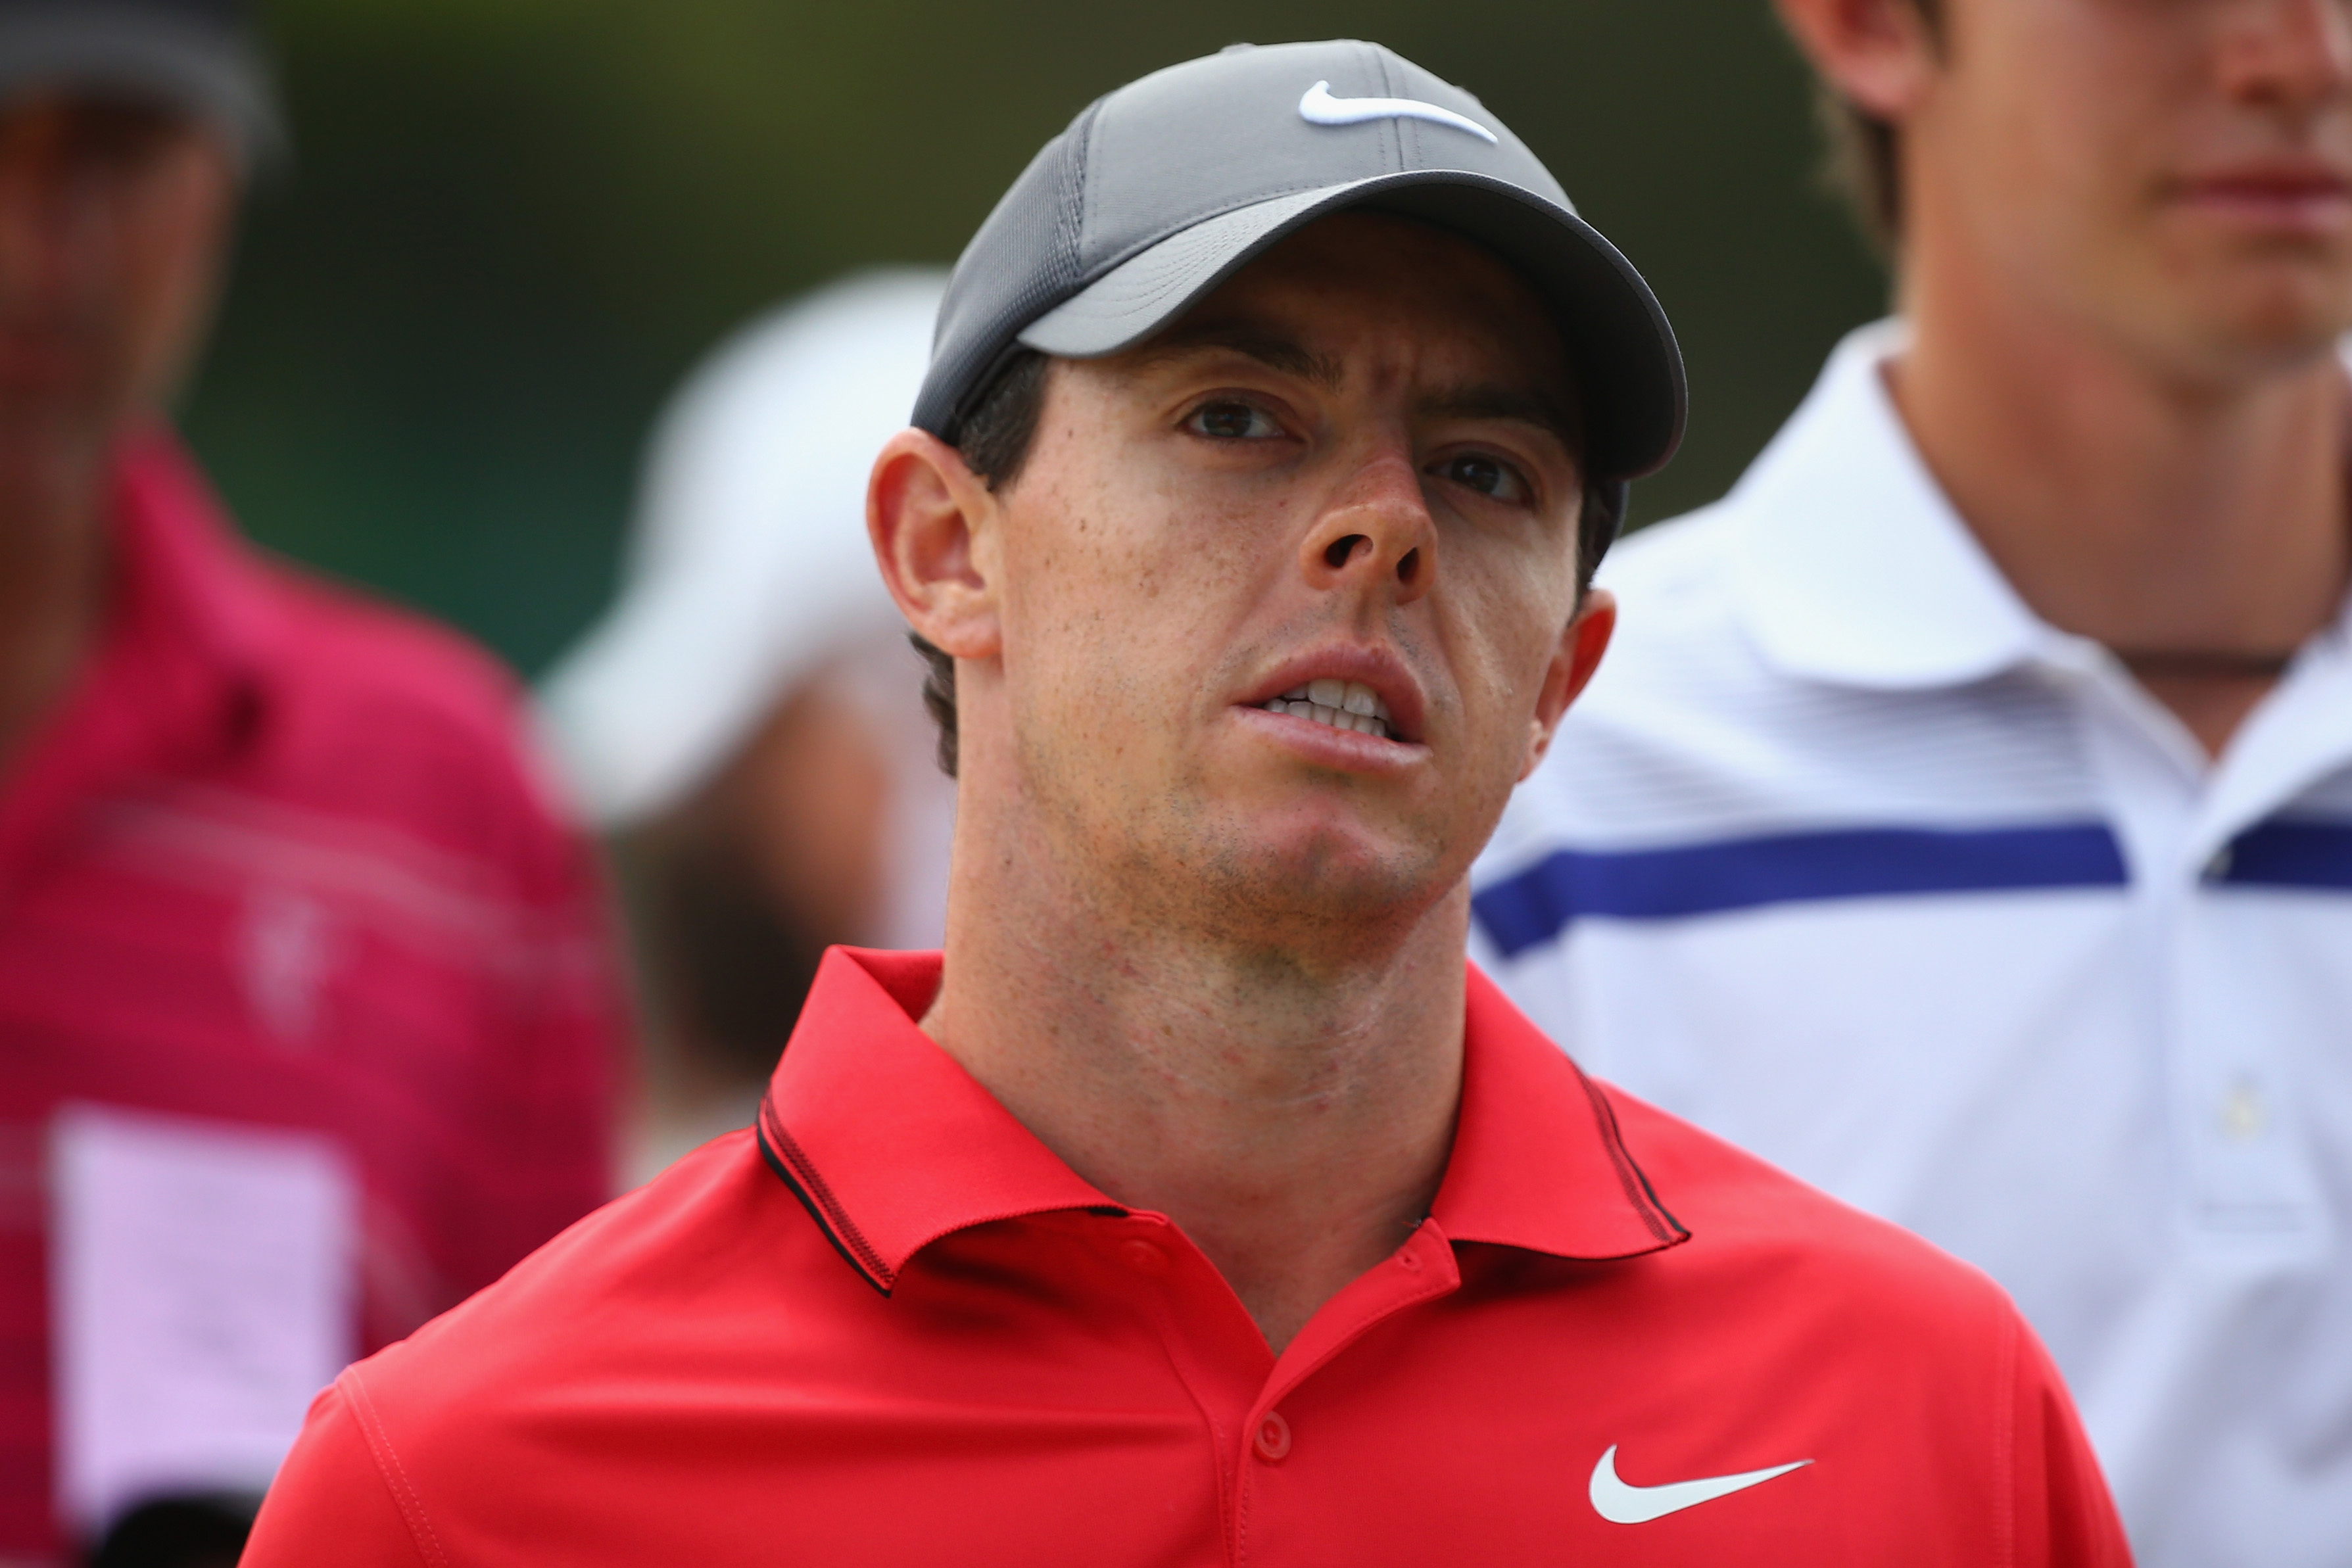 Rory McIlroy at the 2014 Australian Open